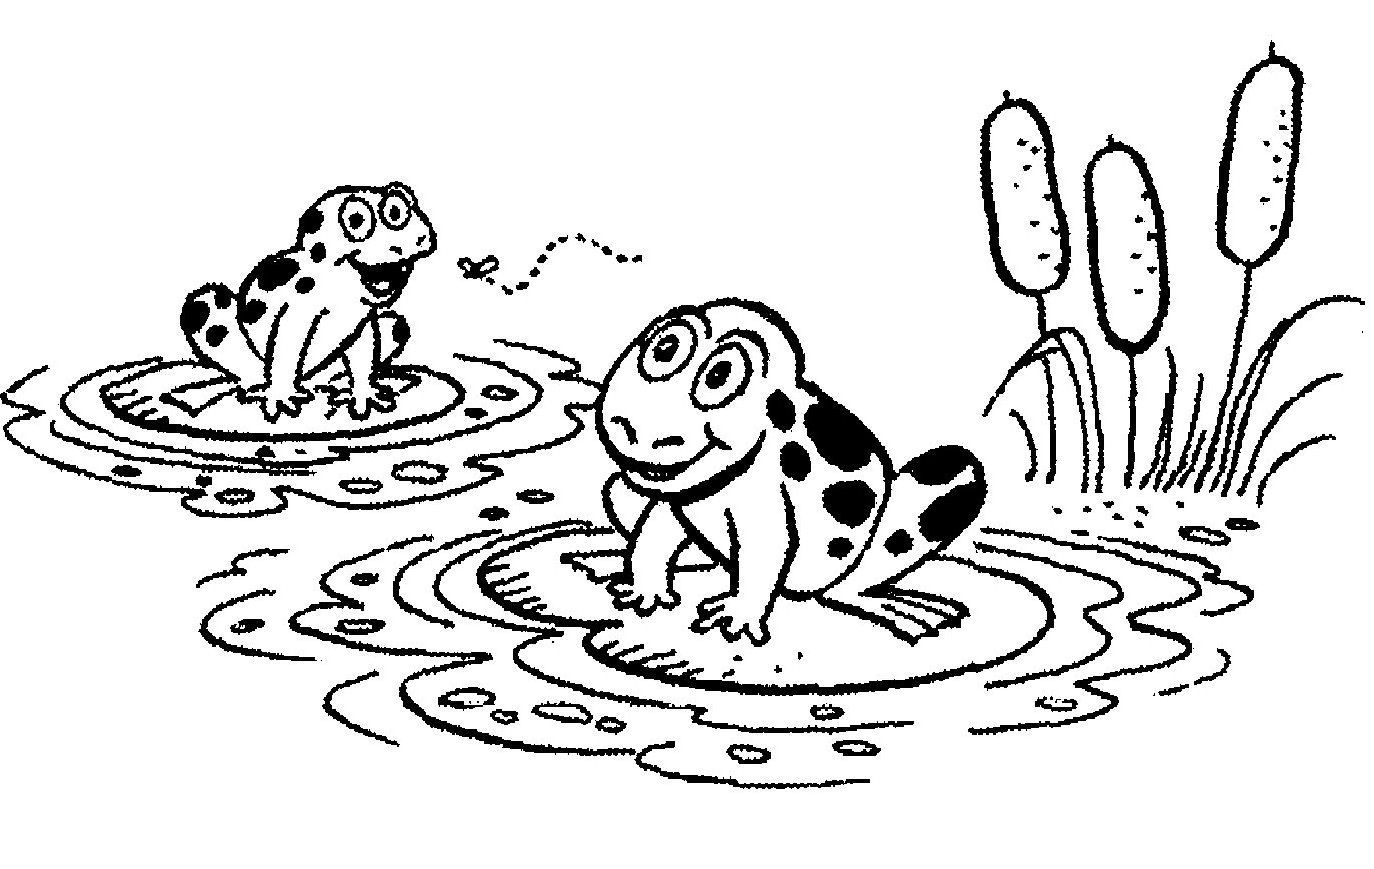 Wildlife habitat in backyard black and white clipart jpg library Collection of Habitat clipart | Free download best Habitat ... jpg library